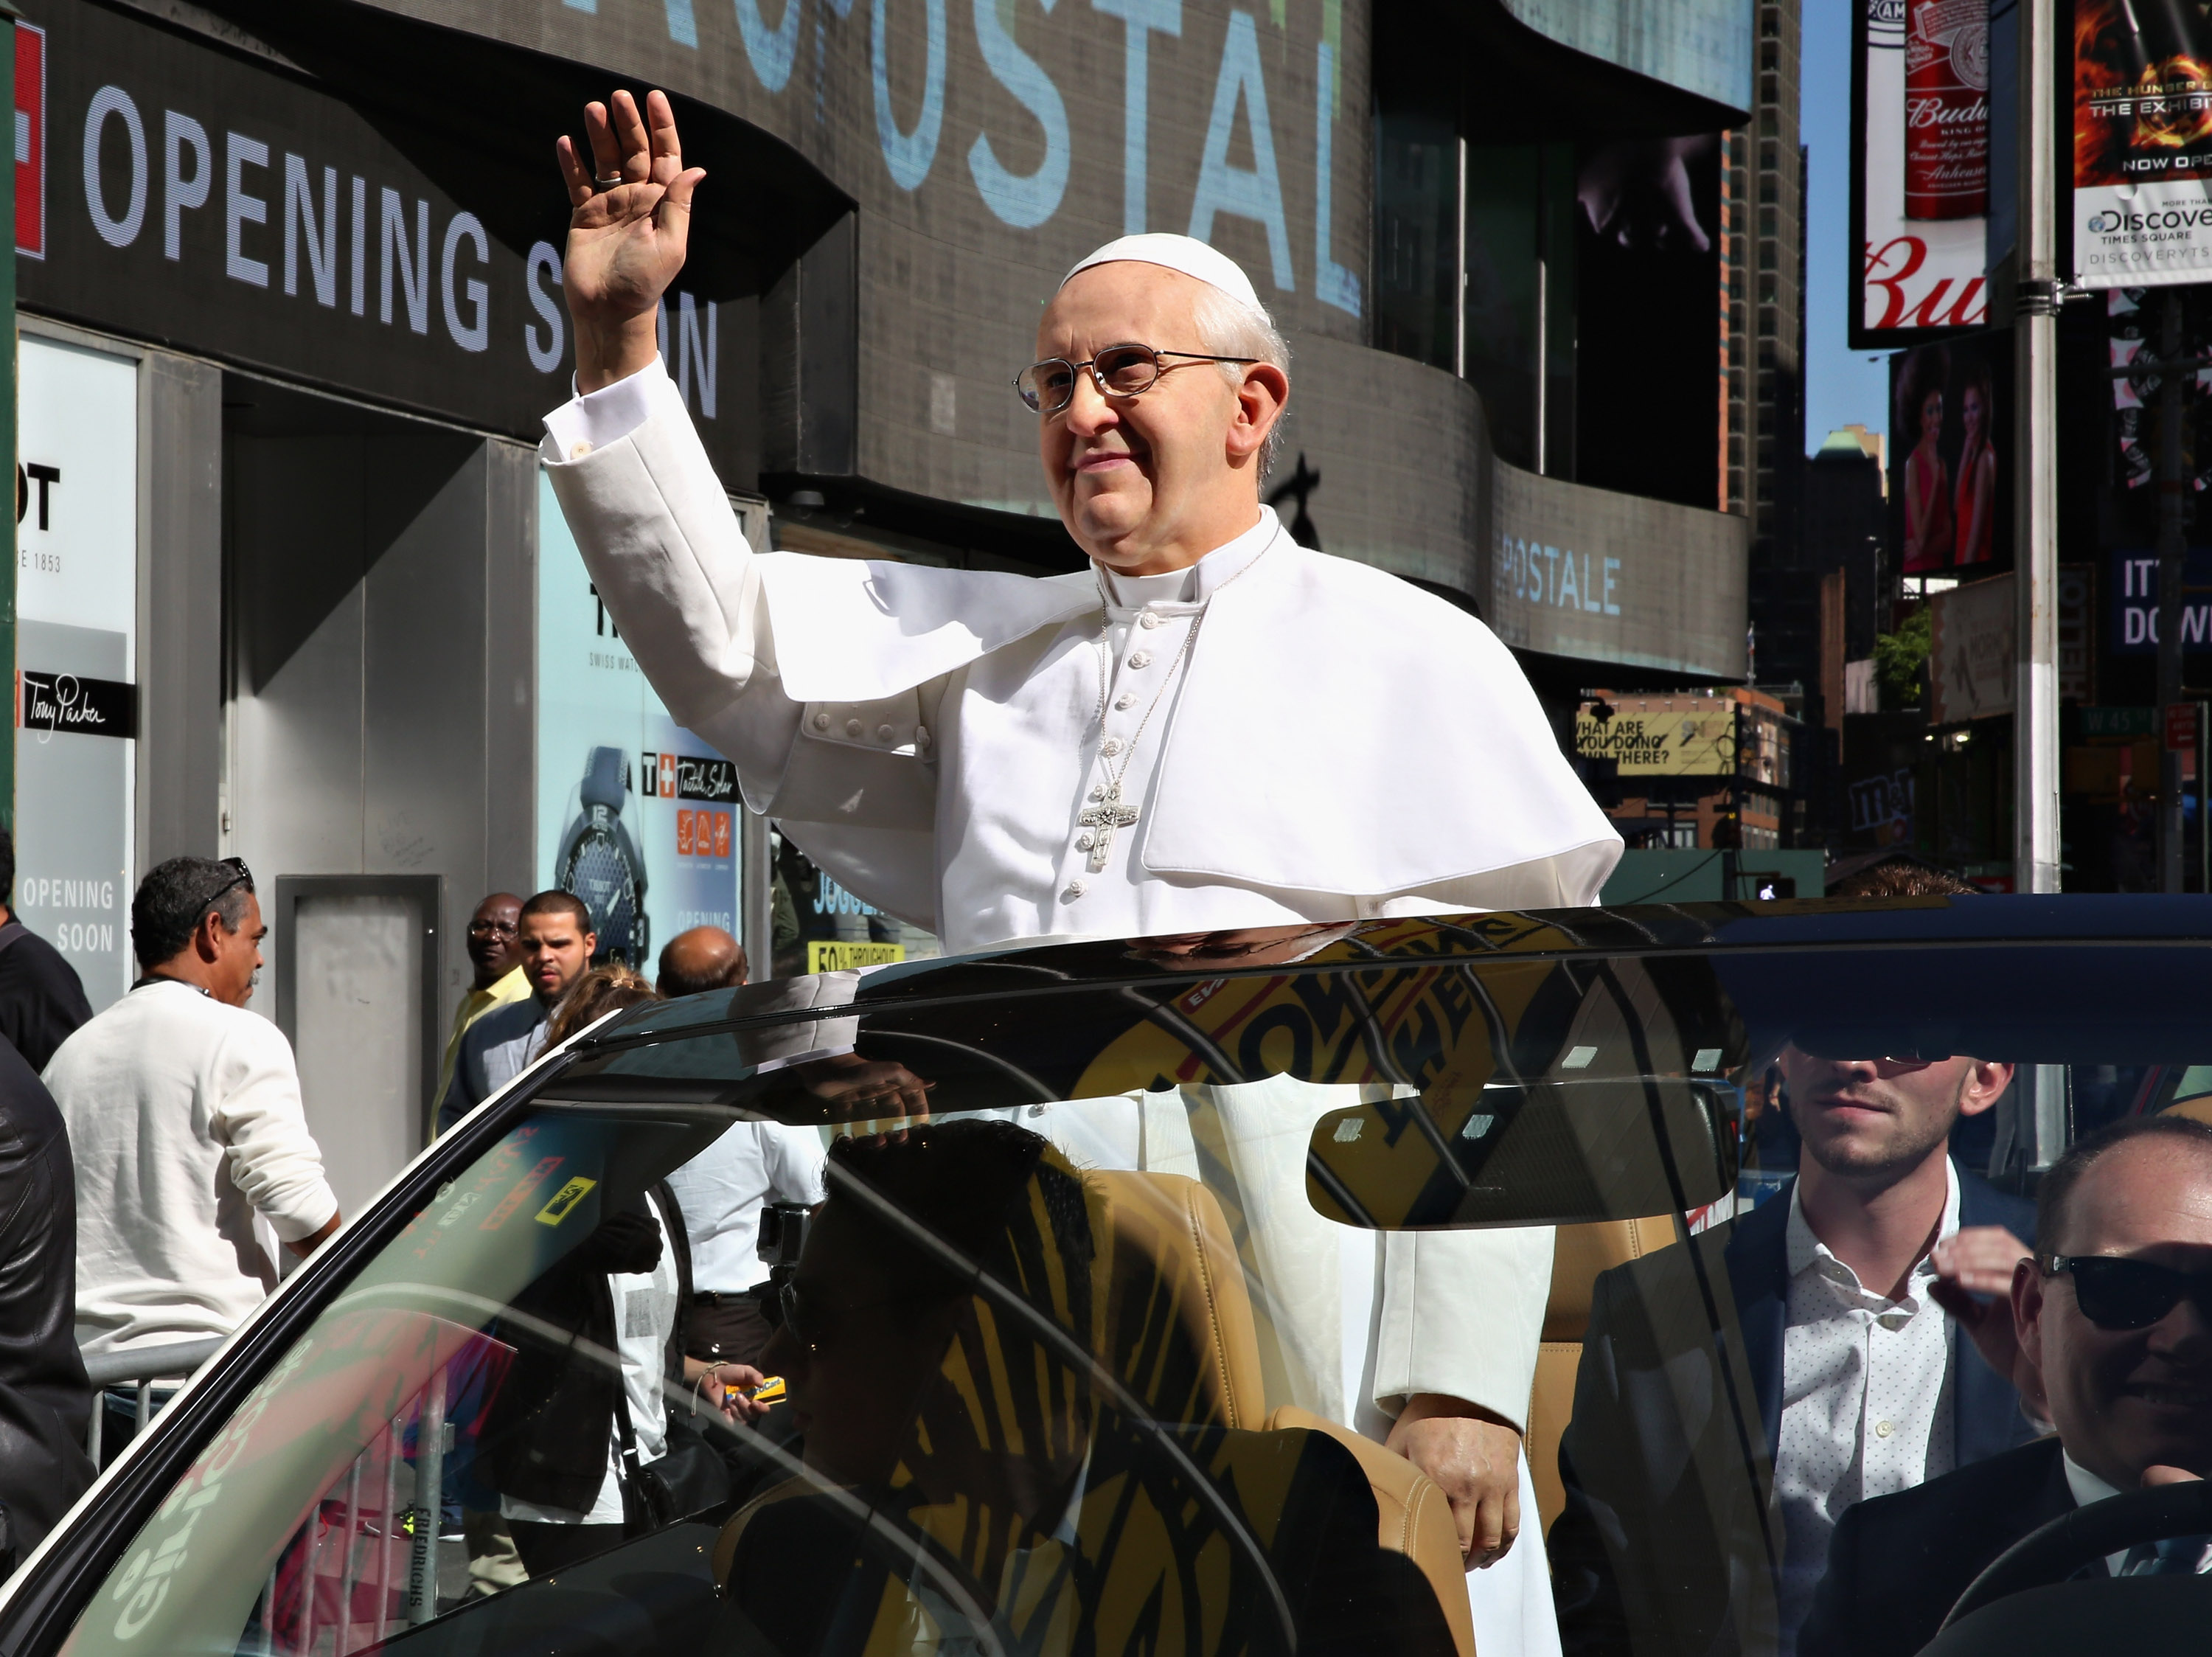 NEW YORK, NY - SEPTEMBER 24:  Madame Tussauds New York unveils a never-before-seen Pope Francis figure with a tour around New York City in a 'Pope Mobile' to celebrate the Pope's inaugural U.S. visit on September 24, 2015 in New York City.  (Photo by Cindy Ord/Getty Images for Madame Tussauds New York)